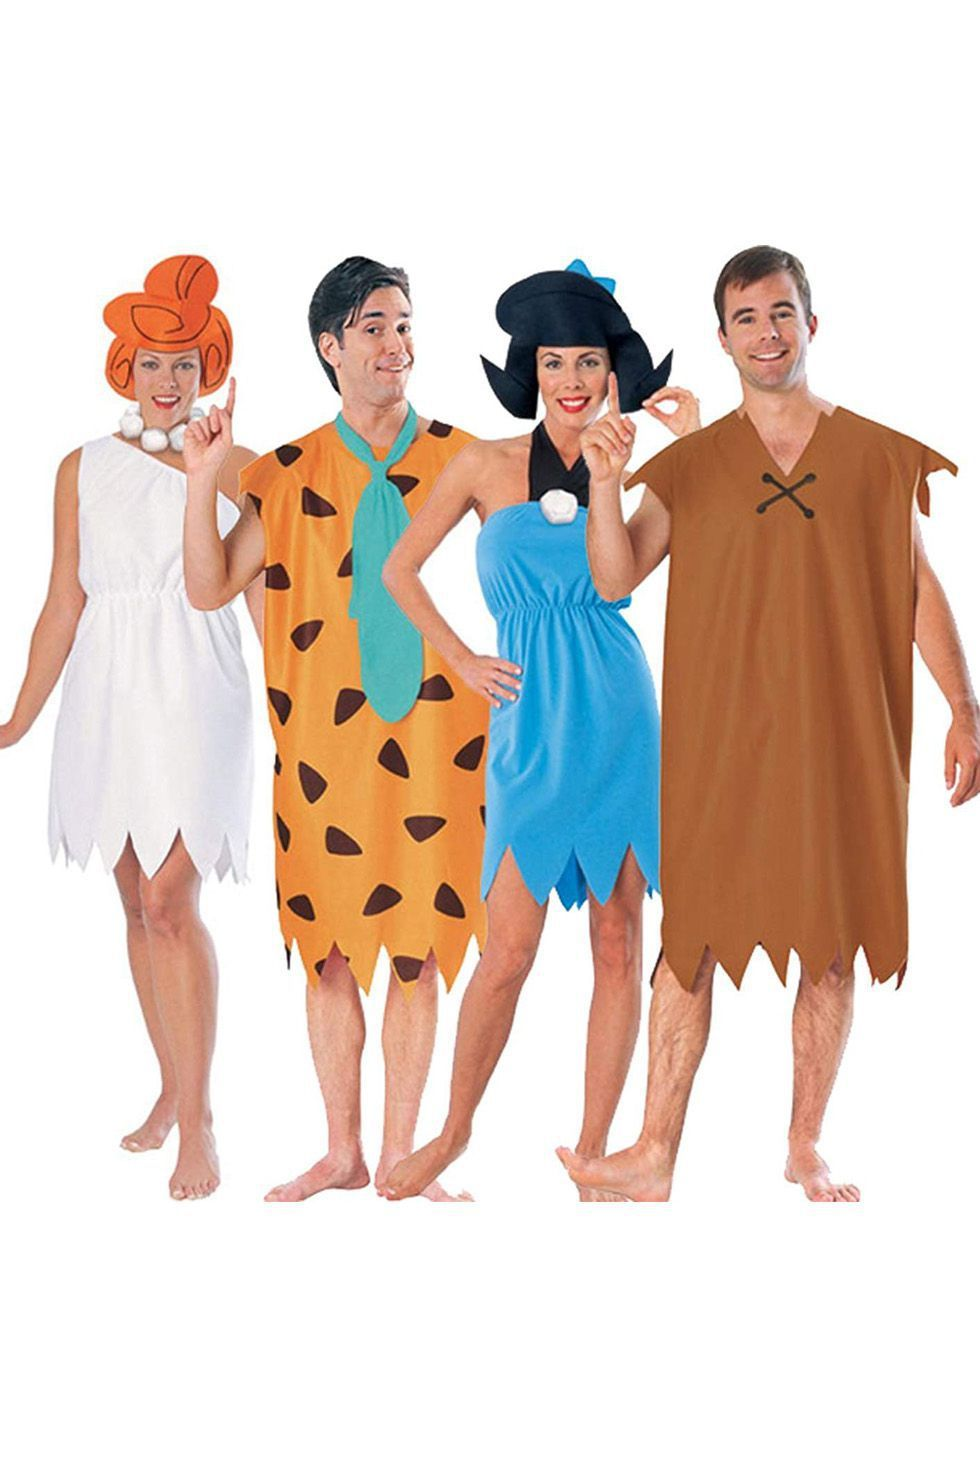 0c4be8f5c 25 Cute Group Halloween Costume Ideas - Easy DIY Friend Halloween Costumes